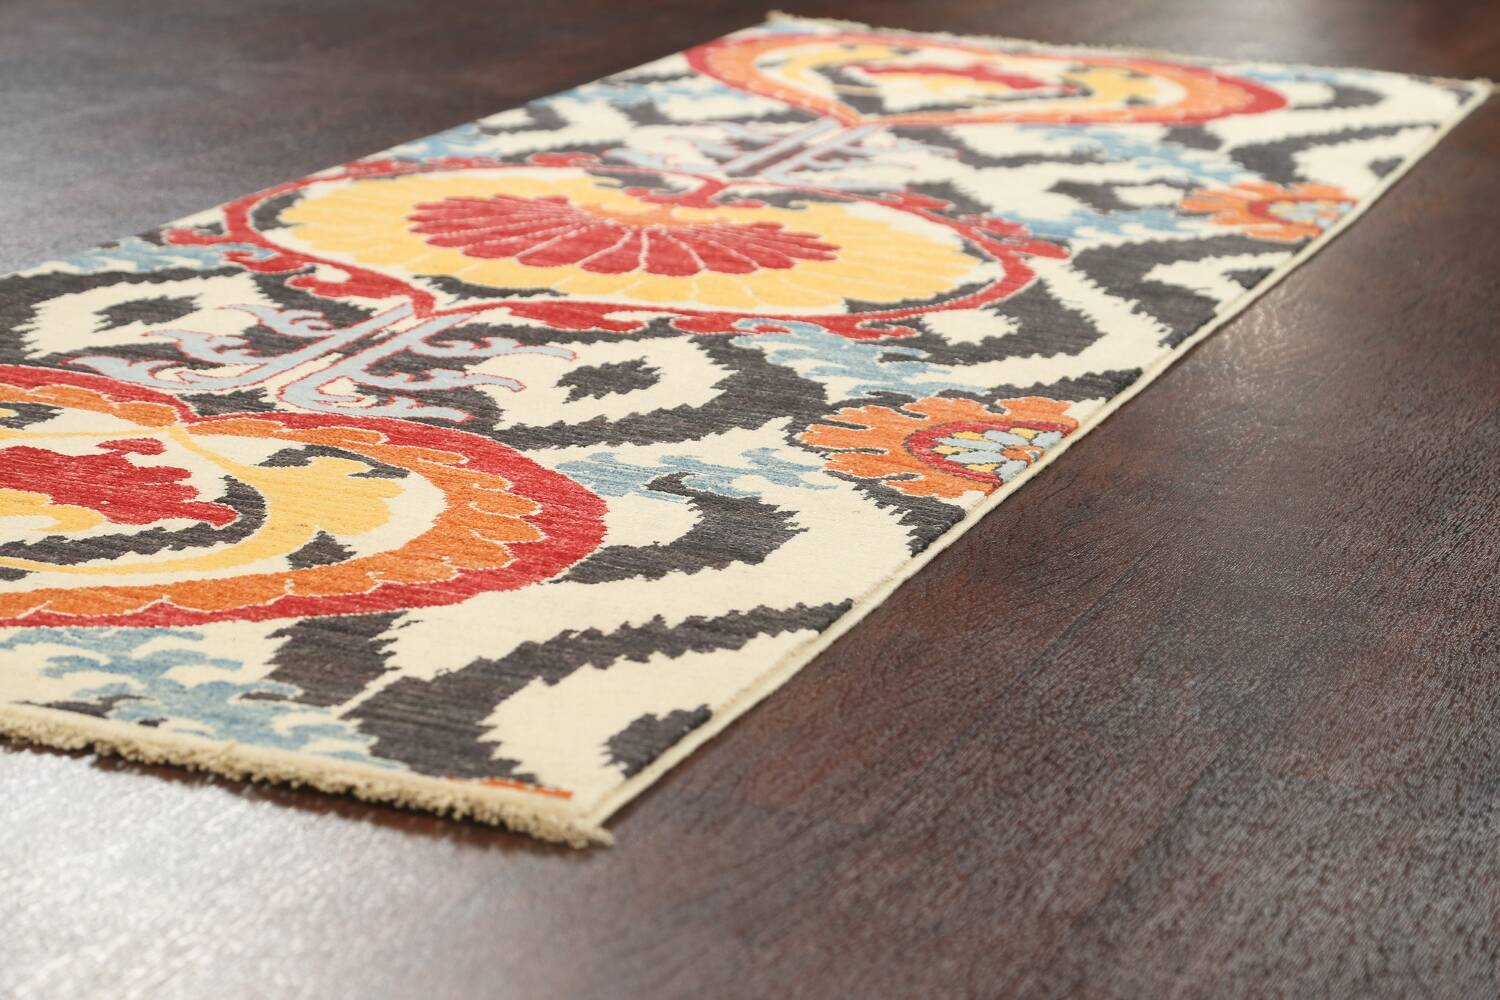 All-Over Floral IKats Oriental Runner Rug 3x8 image 6